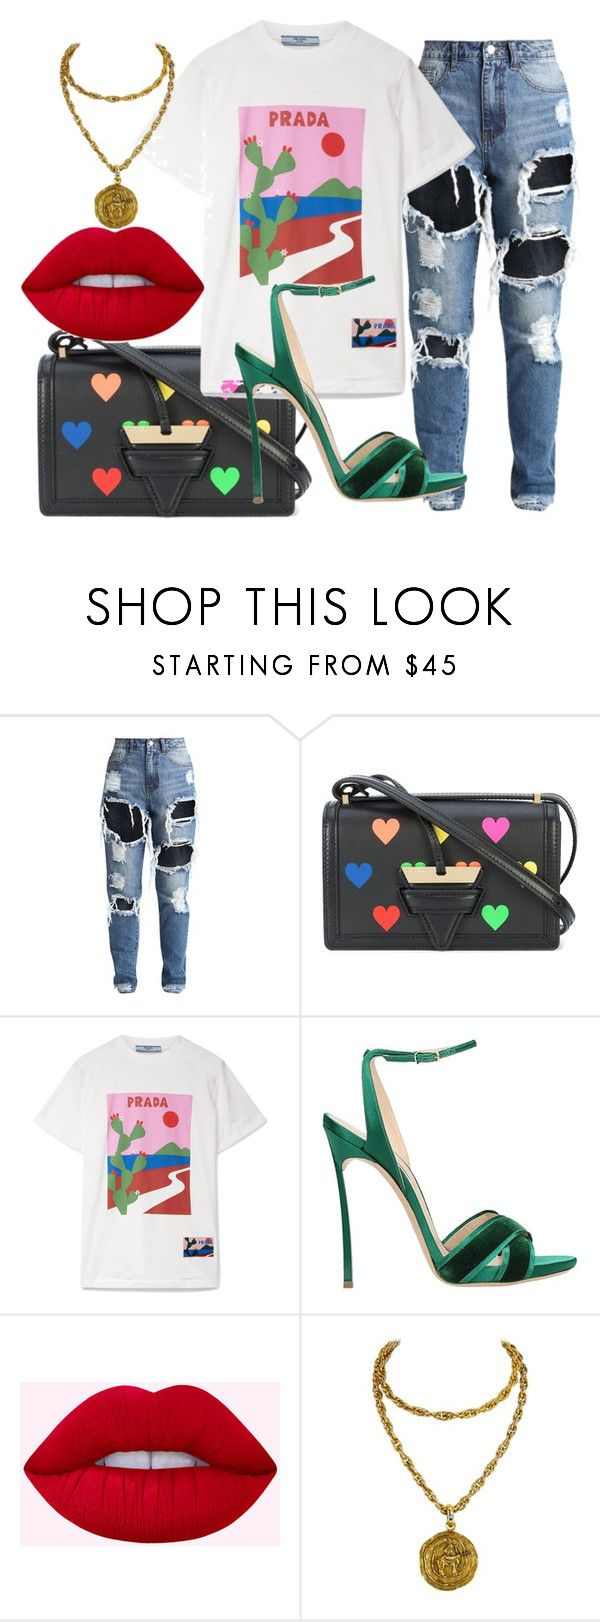 """""""VIEWER DISCRETION ADVISED"""" by julianduka ❤ liked on Polyvore featuring Loewe, Prada, Casadei and Chanel"""